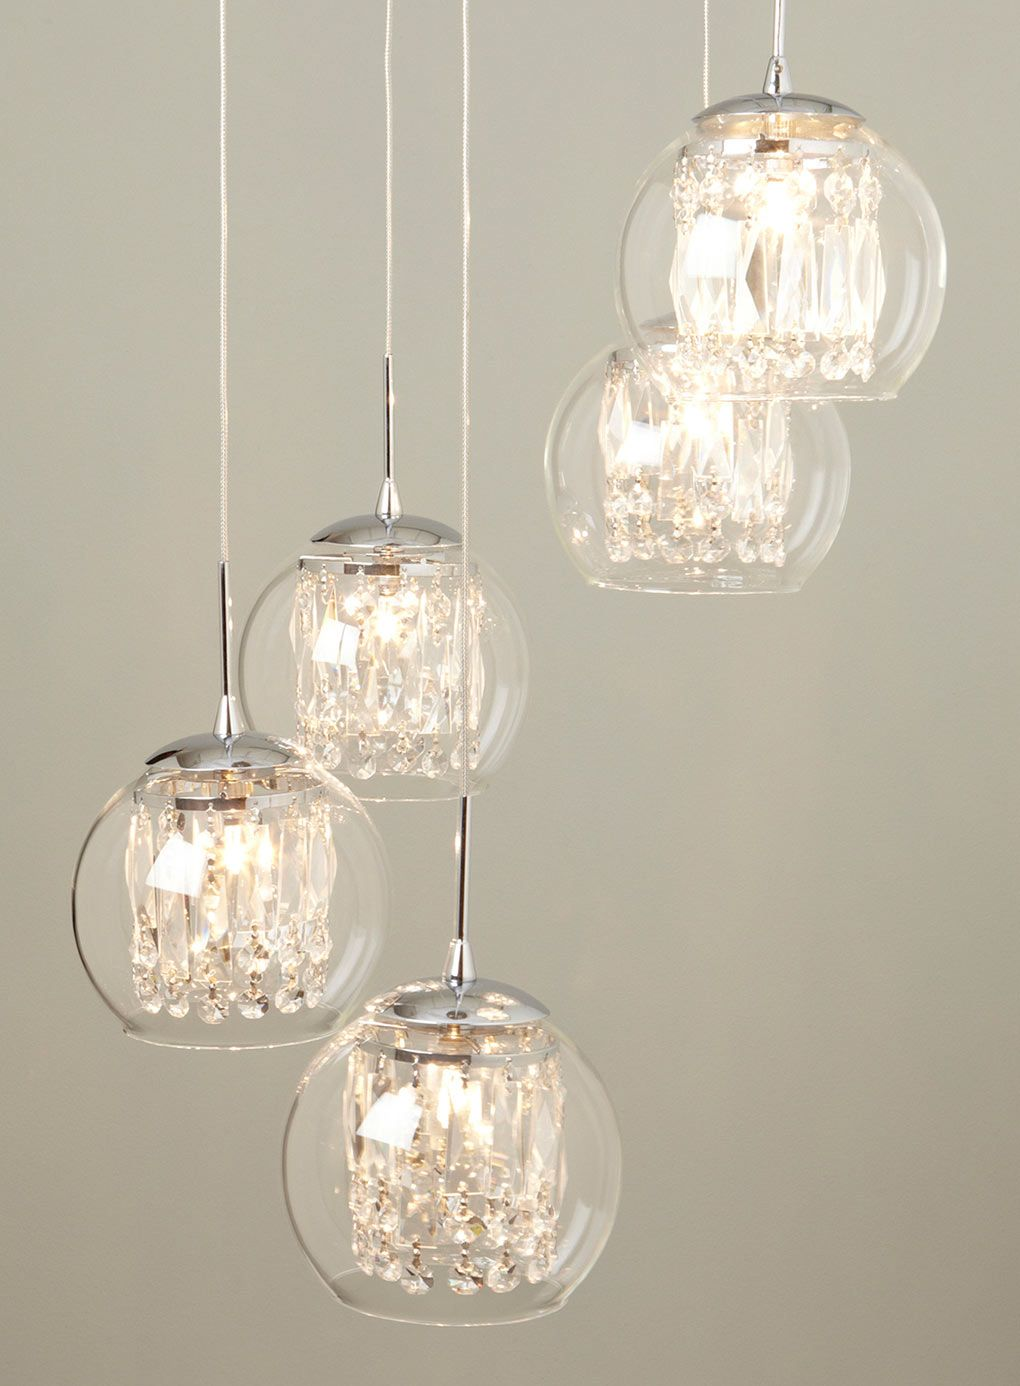 chandelier chrome of lights glass pendant gallery lantern bubble light exciting marvellous